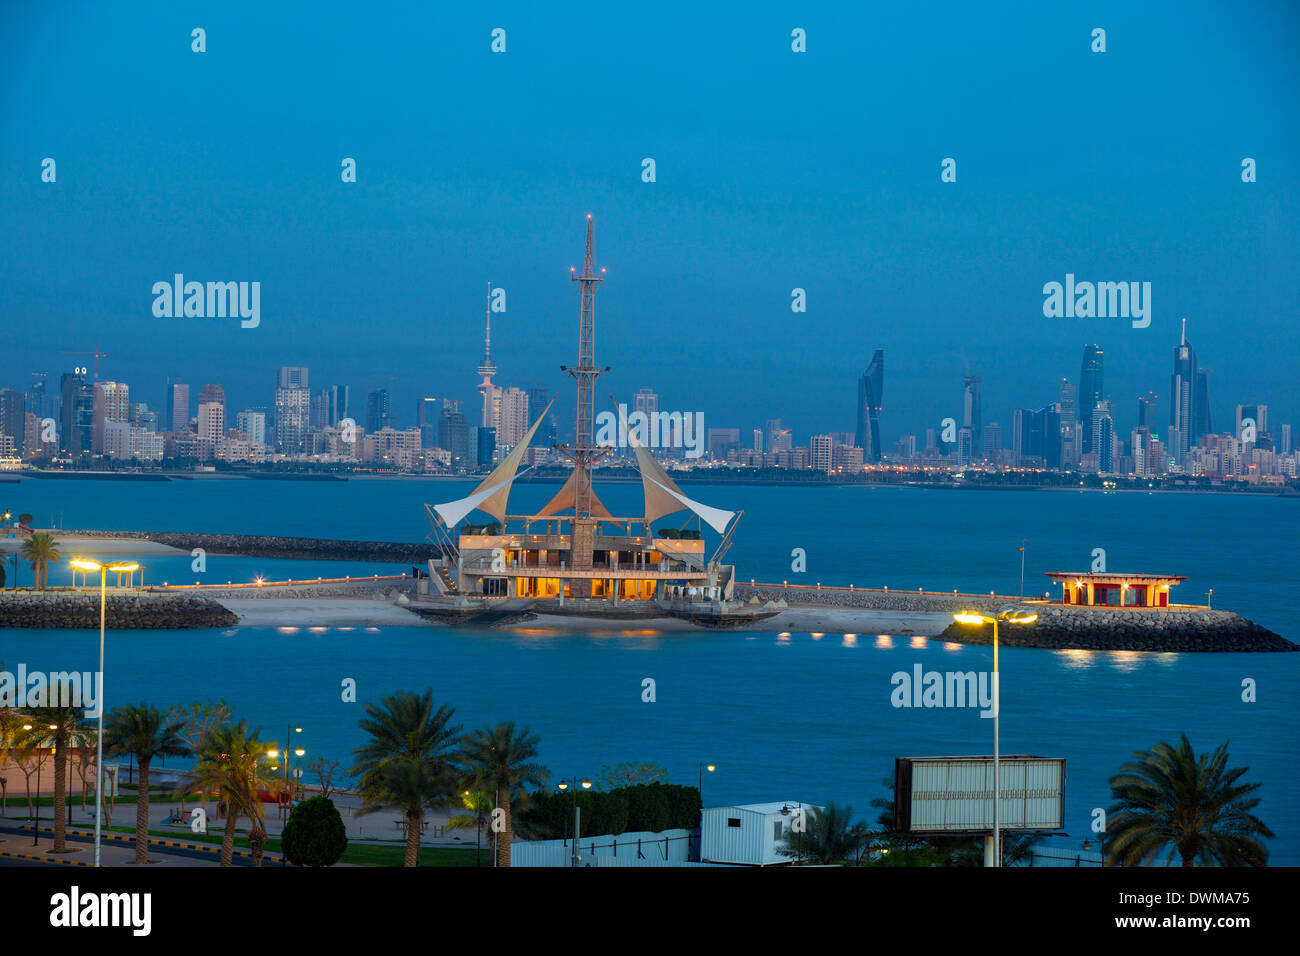 Marina Waves Leisure complex, a three-storey leisure complex, Salmiya, Kuwait City, Kuwait, Middle East - Stock Image